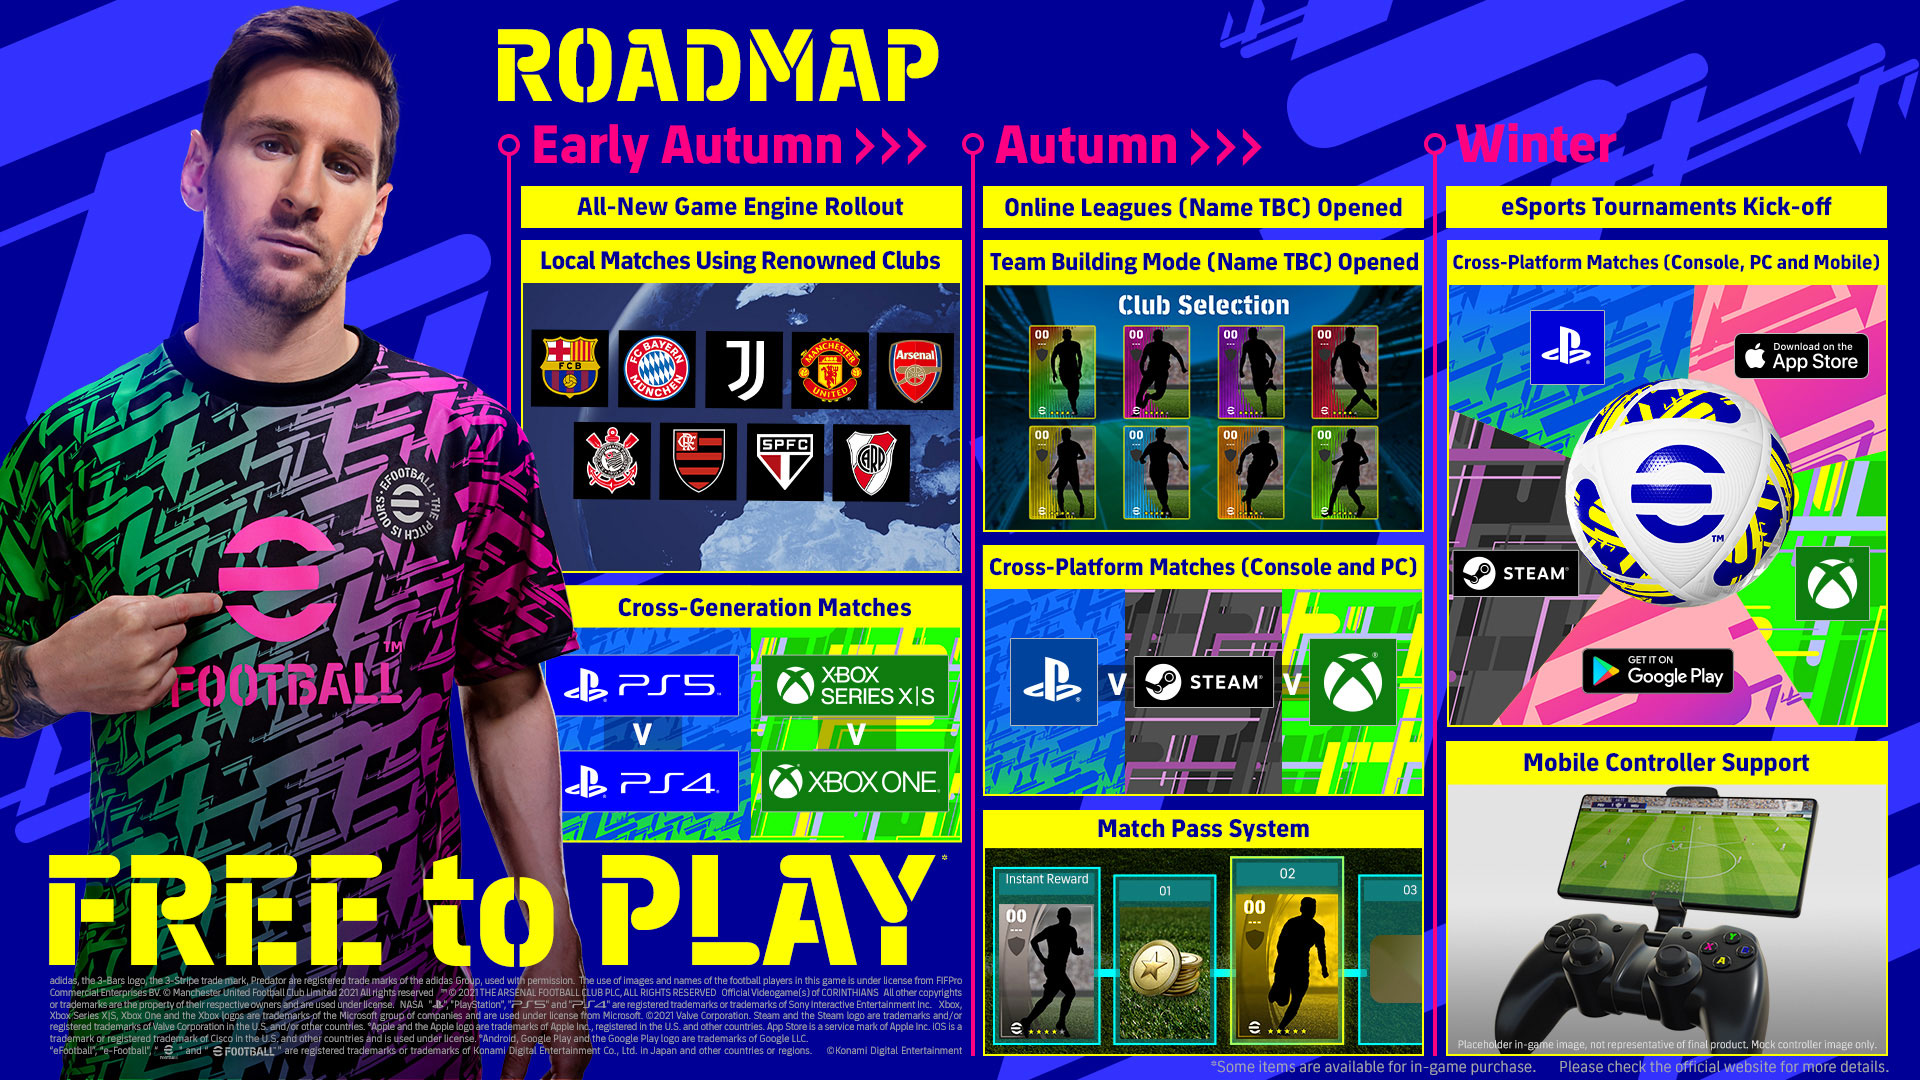 eFootball free to play eFootball 2022 pes 2022 free to play pro evolution soccer